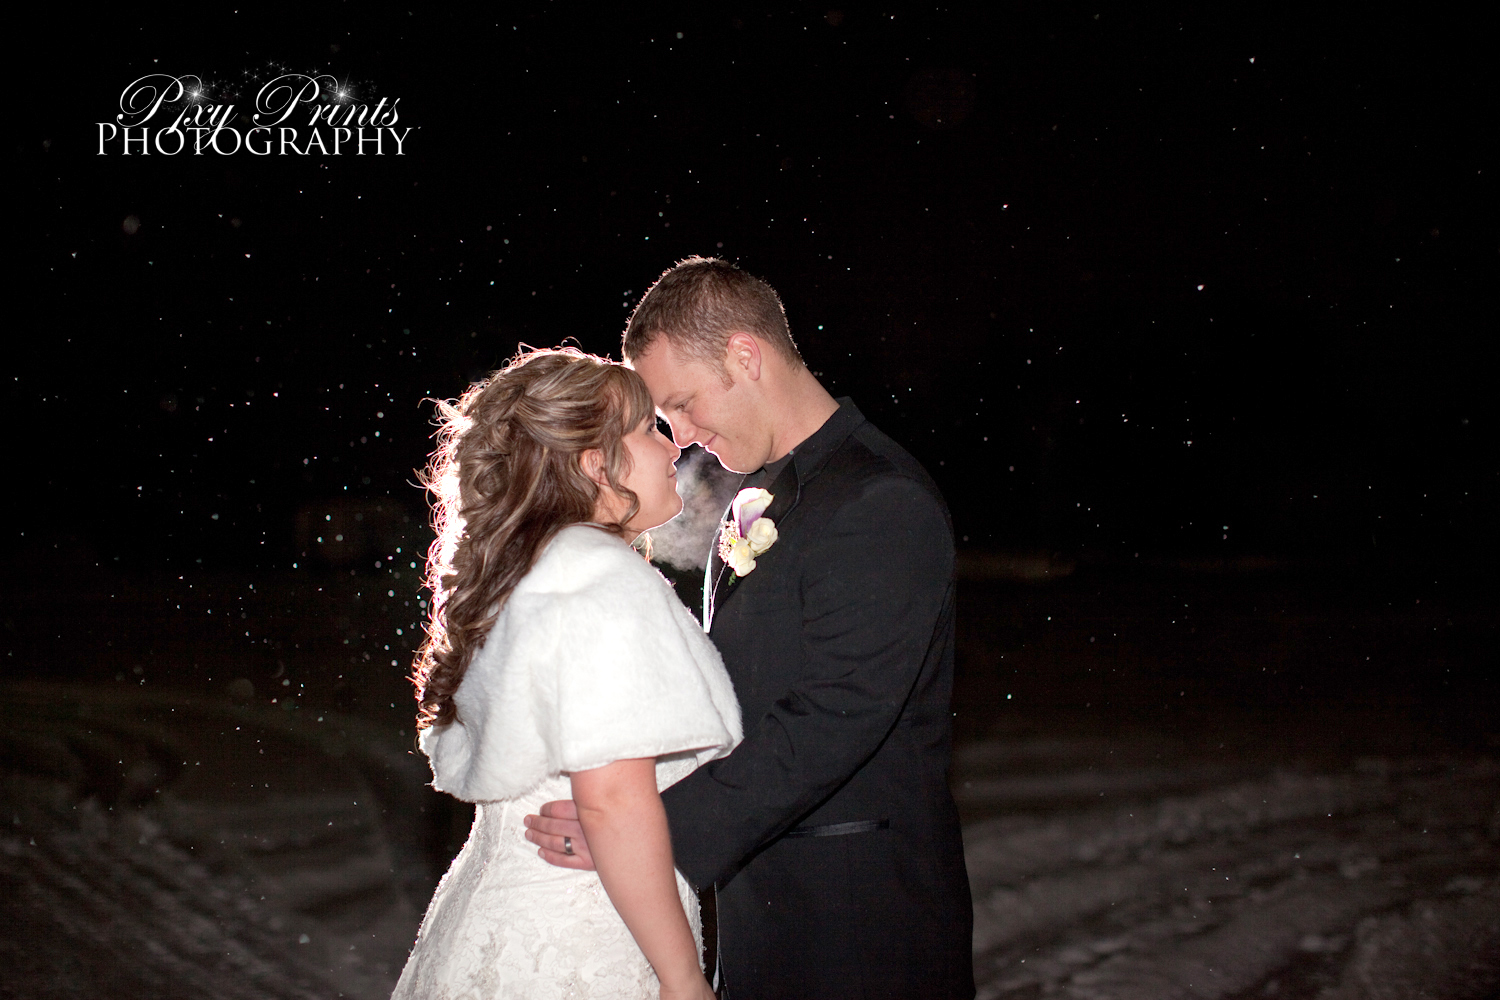 This ...  sc 1 st  Pixy Prints Photography & Wedding Reception Lighting u2013 Pixy Prints Photography azcodes.com